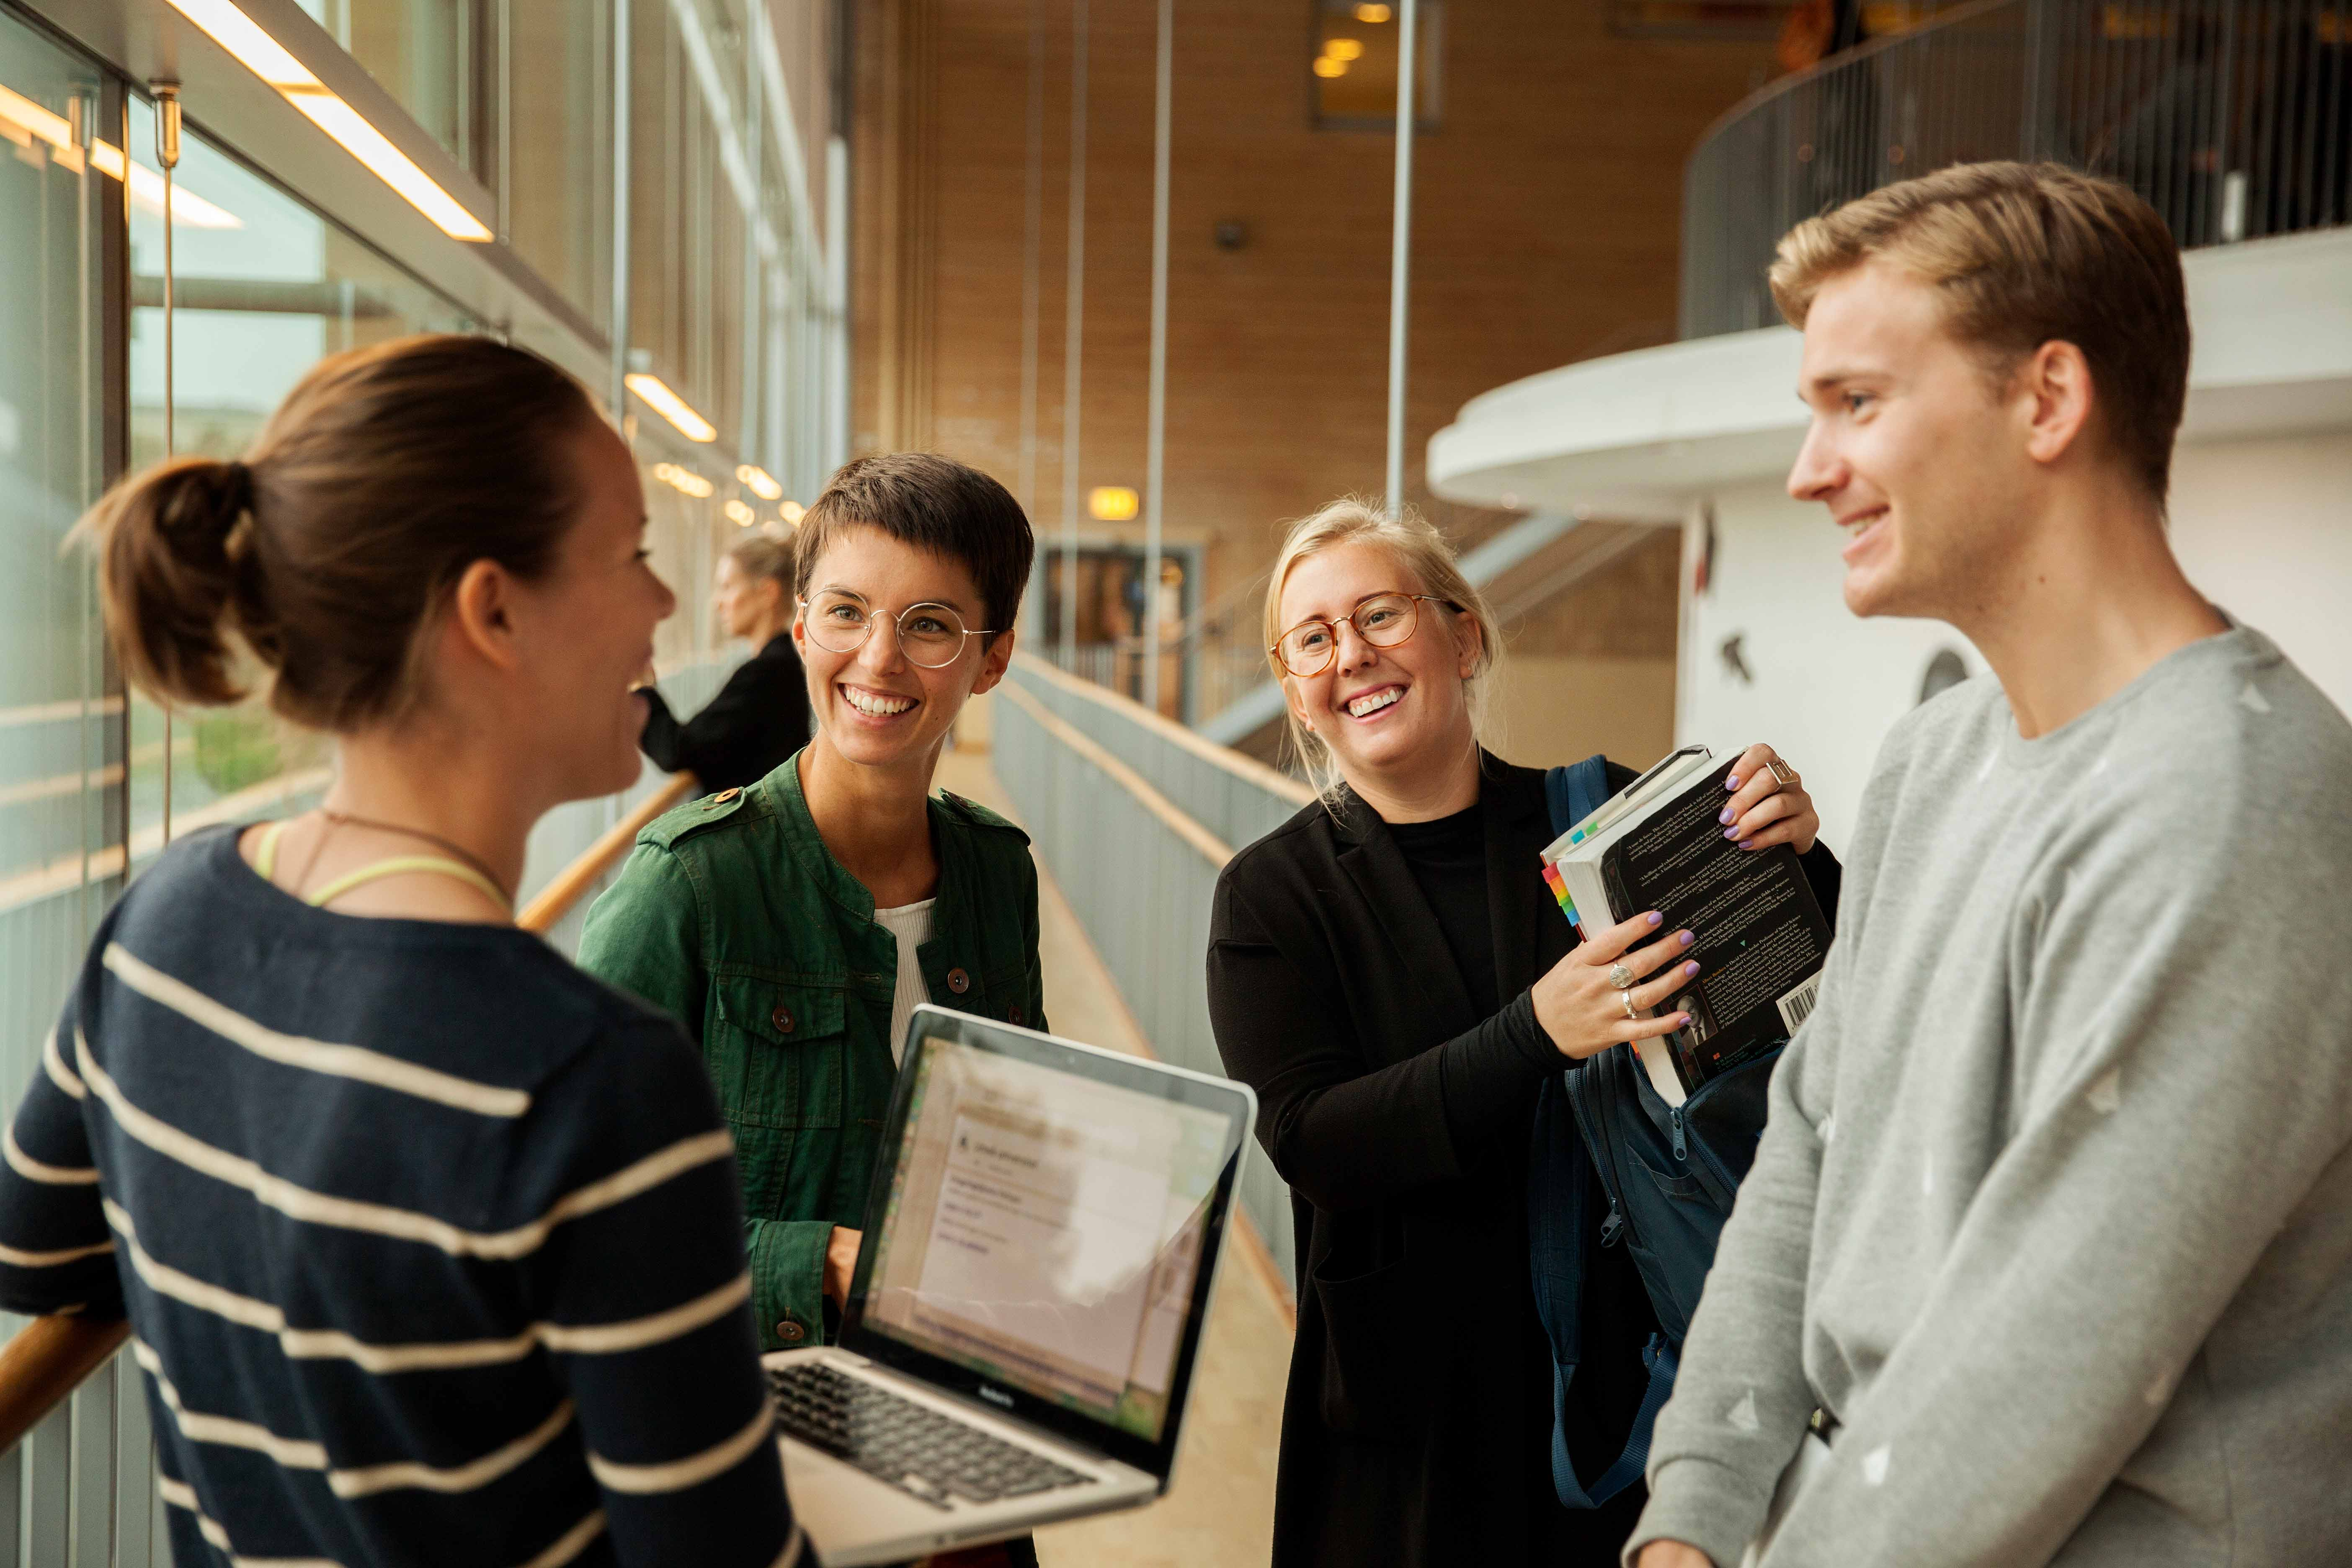 Umeå was ranked number one in Sweden in terms of jobs created, thanks to the rapid growth of its creative economy. Image credit - Umea City Council